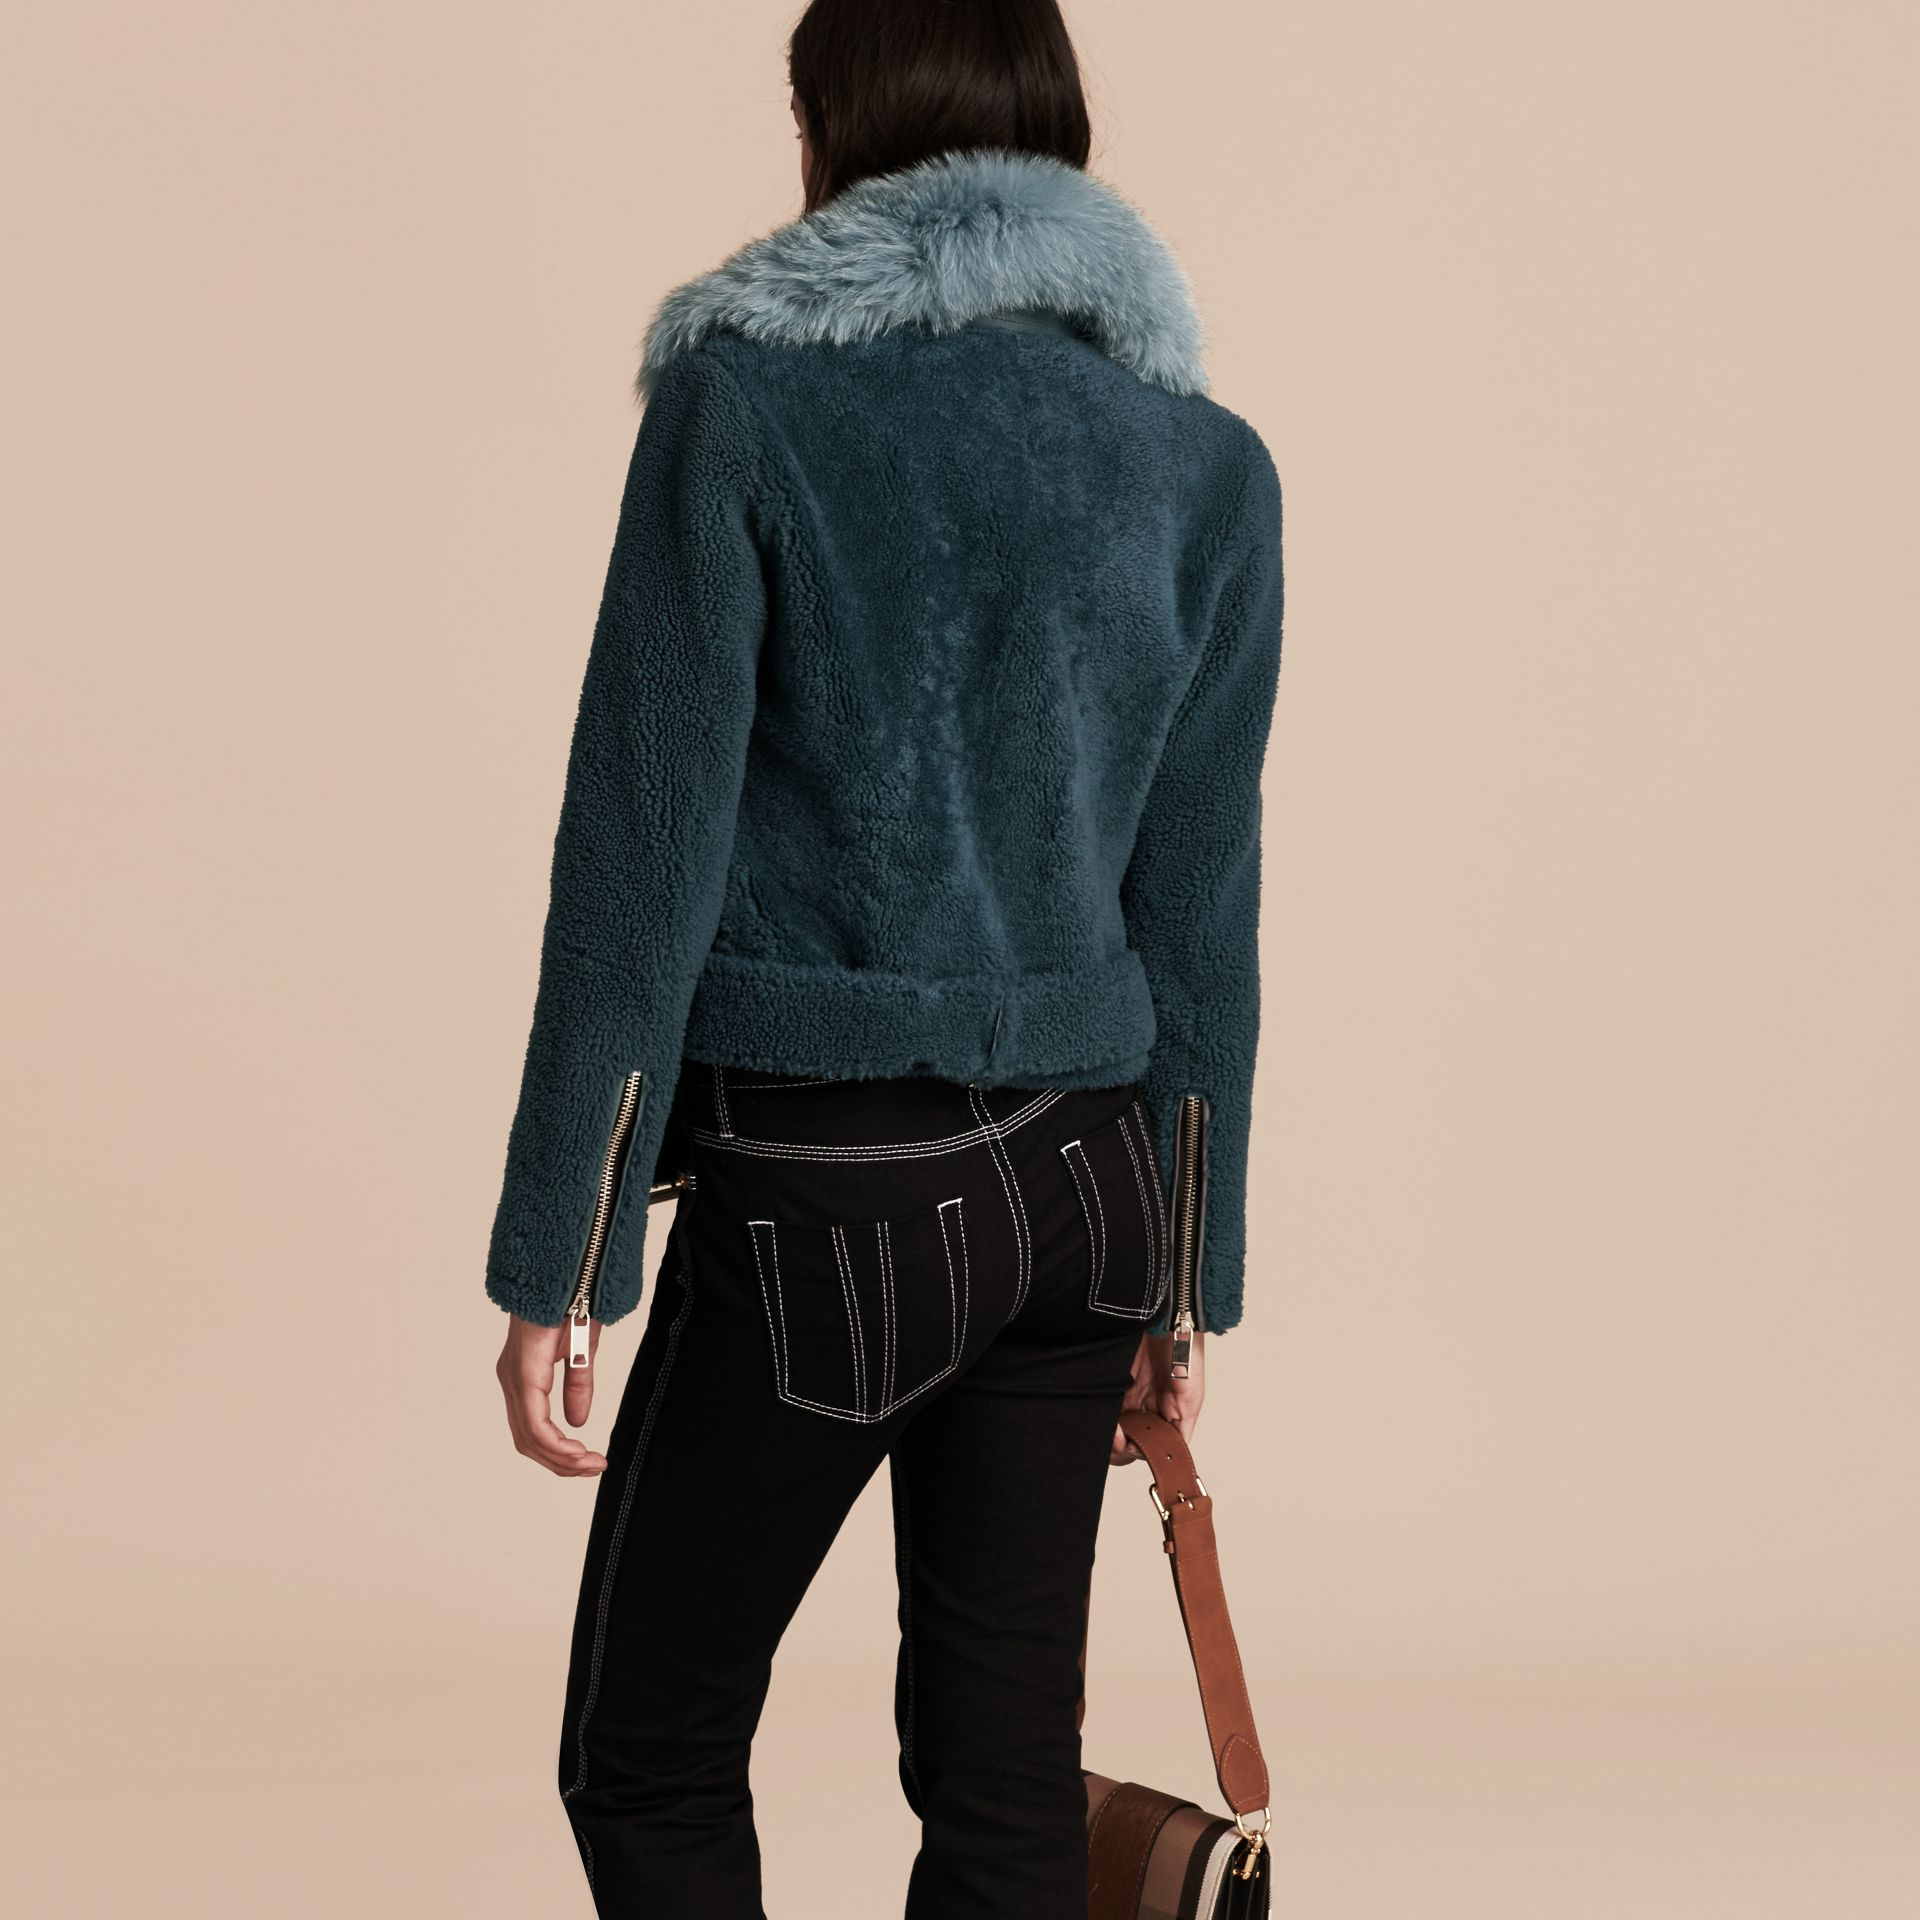 Light steel blue Shearling Biker Jacket with Fur Collar Light Steel Blue - gallery image 3